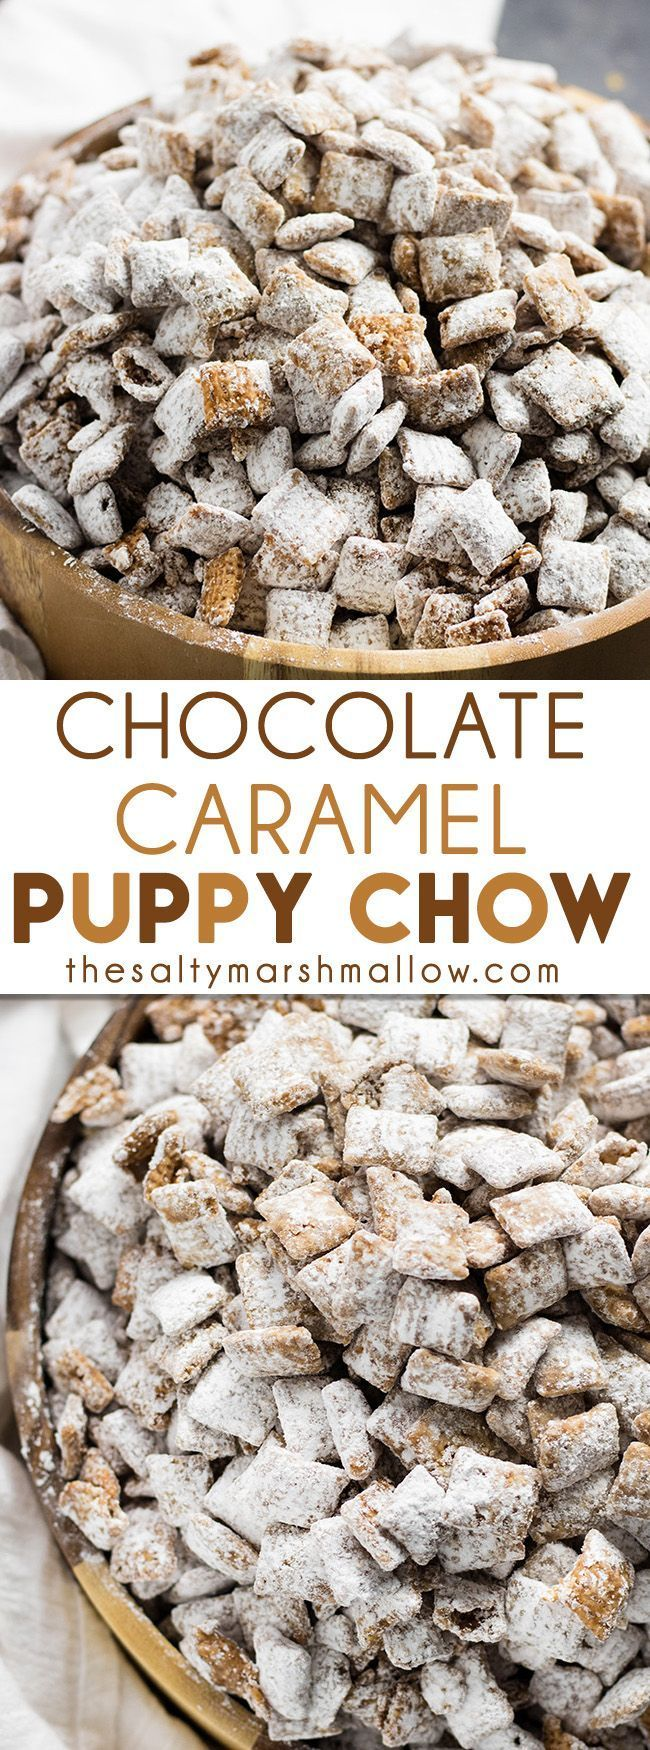 Chocolate Caramel Puppy Chow - an easy and tasty twist on the original!  This puppy chow is packed with chocolate caramel flavor! @InDelight